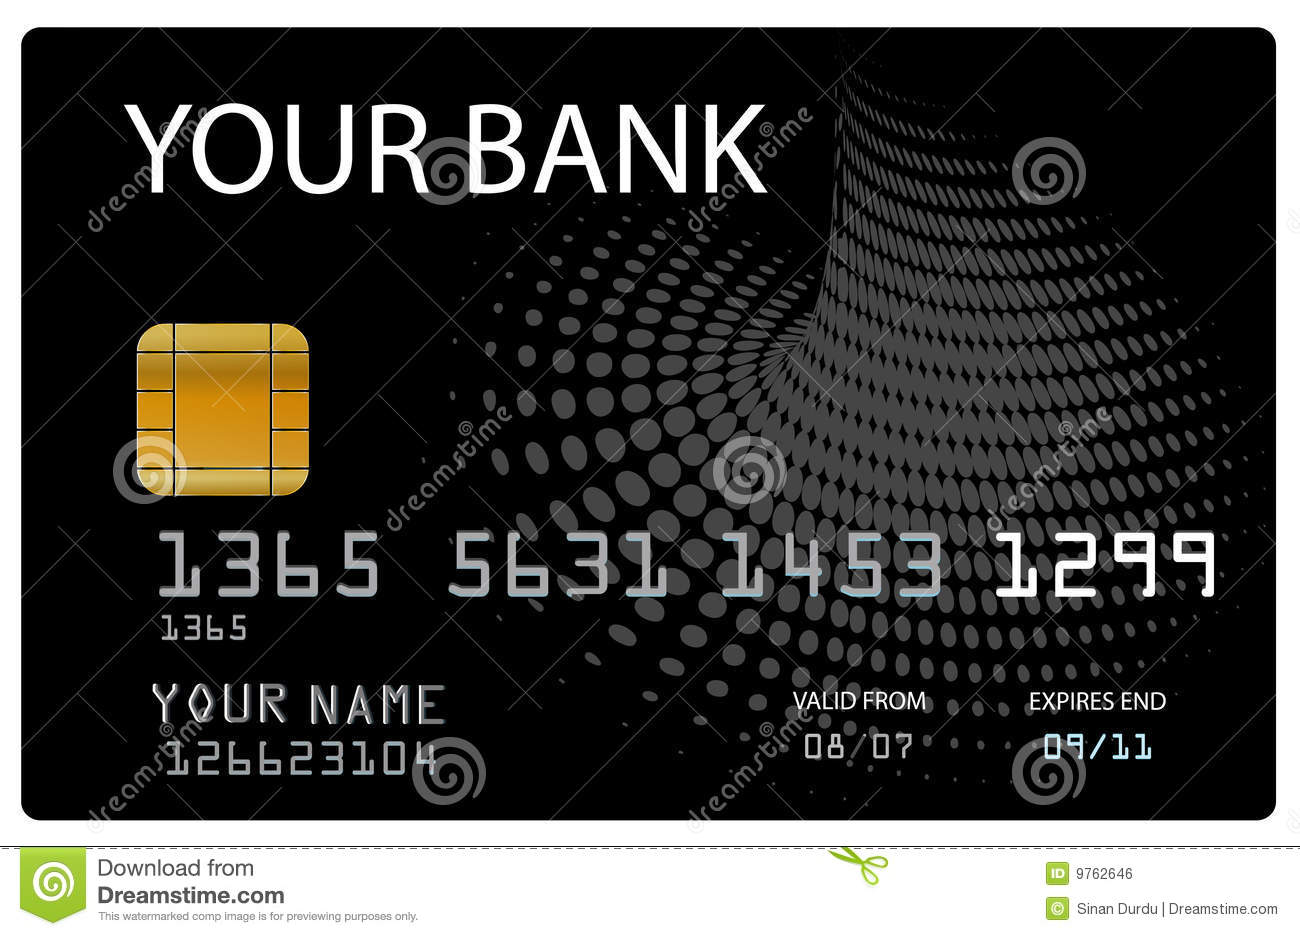 Credit card for your bank